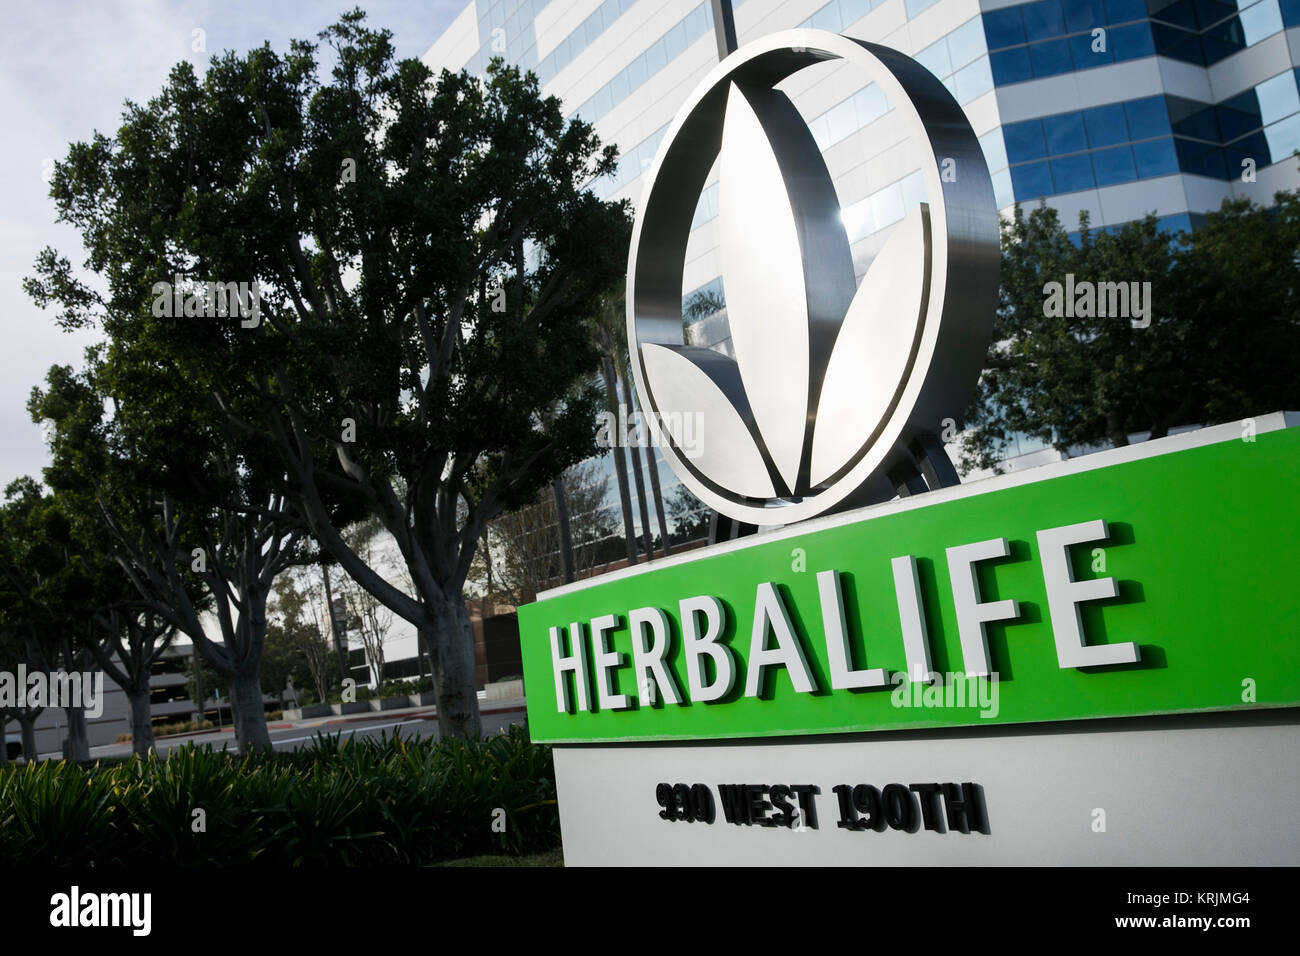 A logo sign outside of a facility occupied by Herbalife